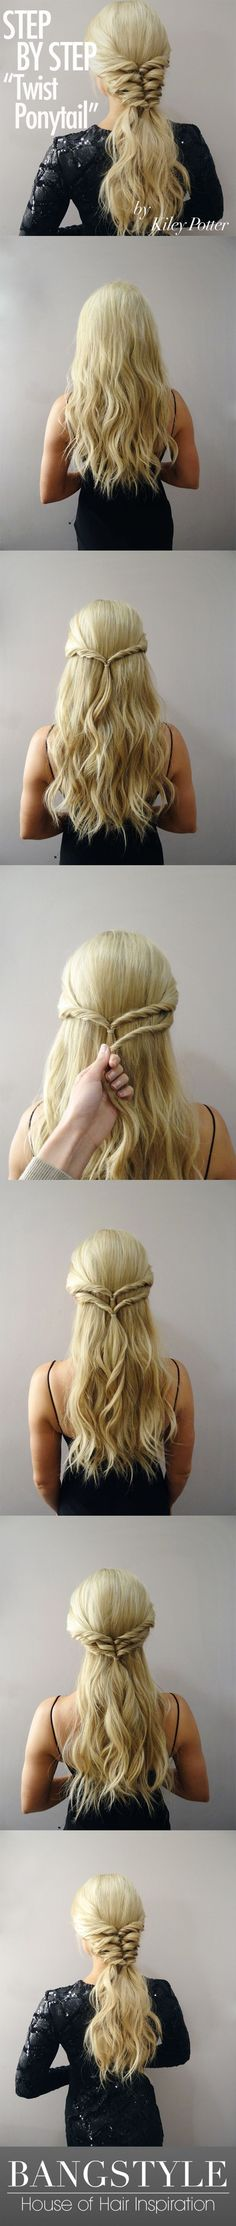 Can you do this, but braided at the top and loose at the bottom, with fringes around the face?